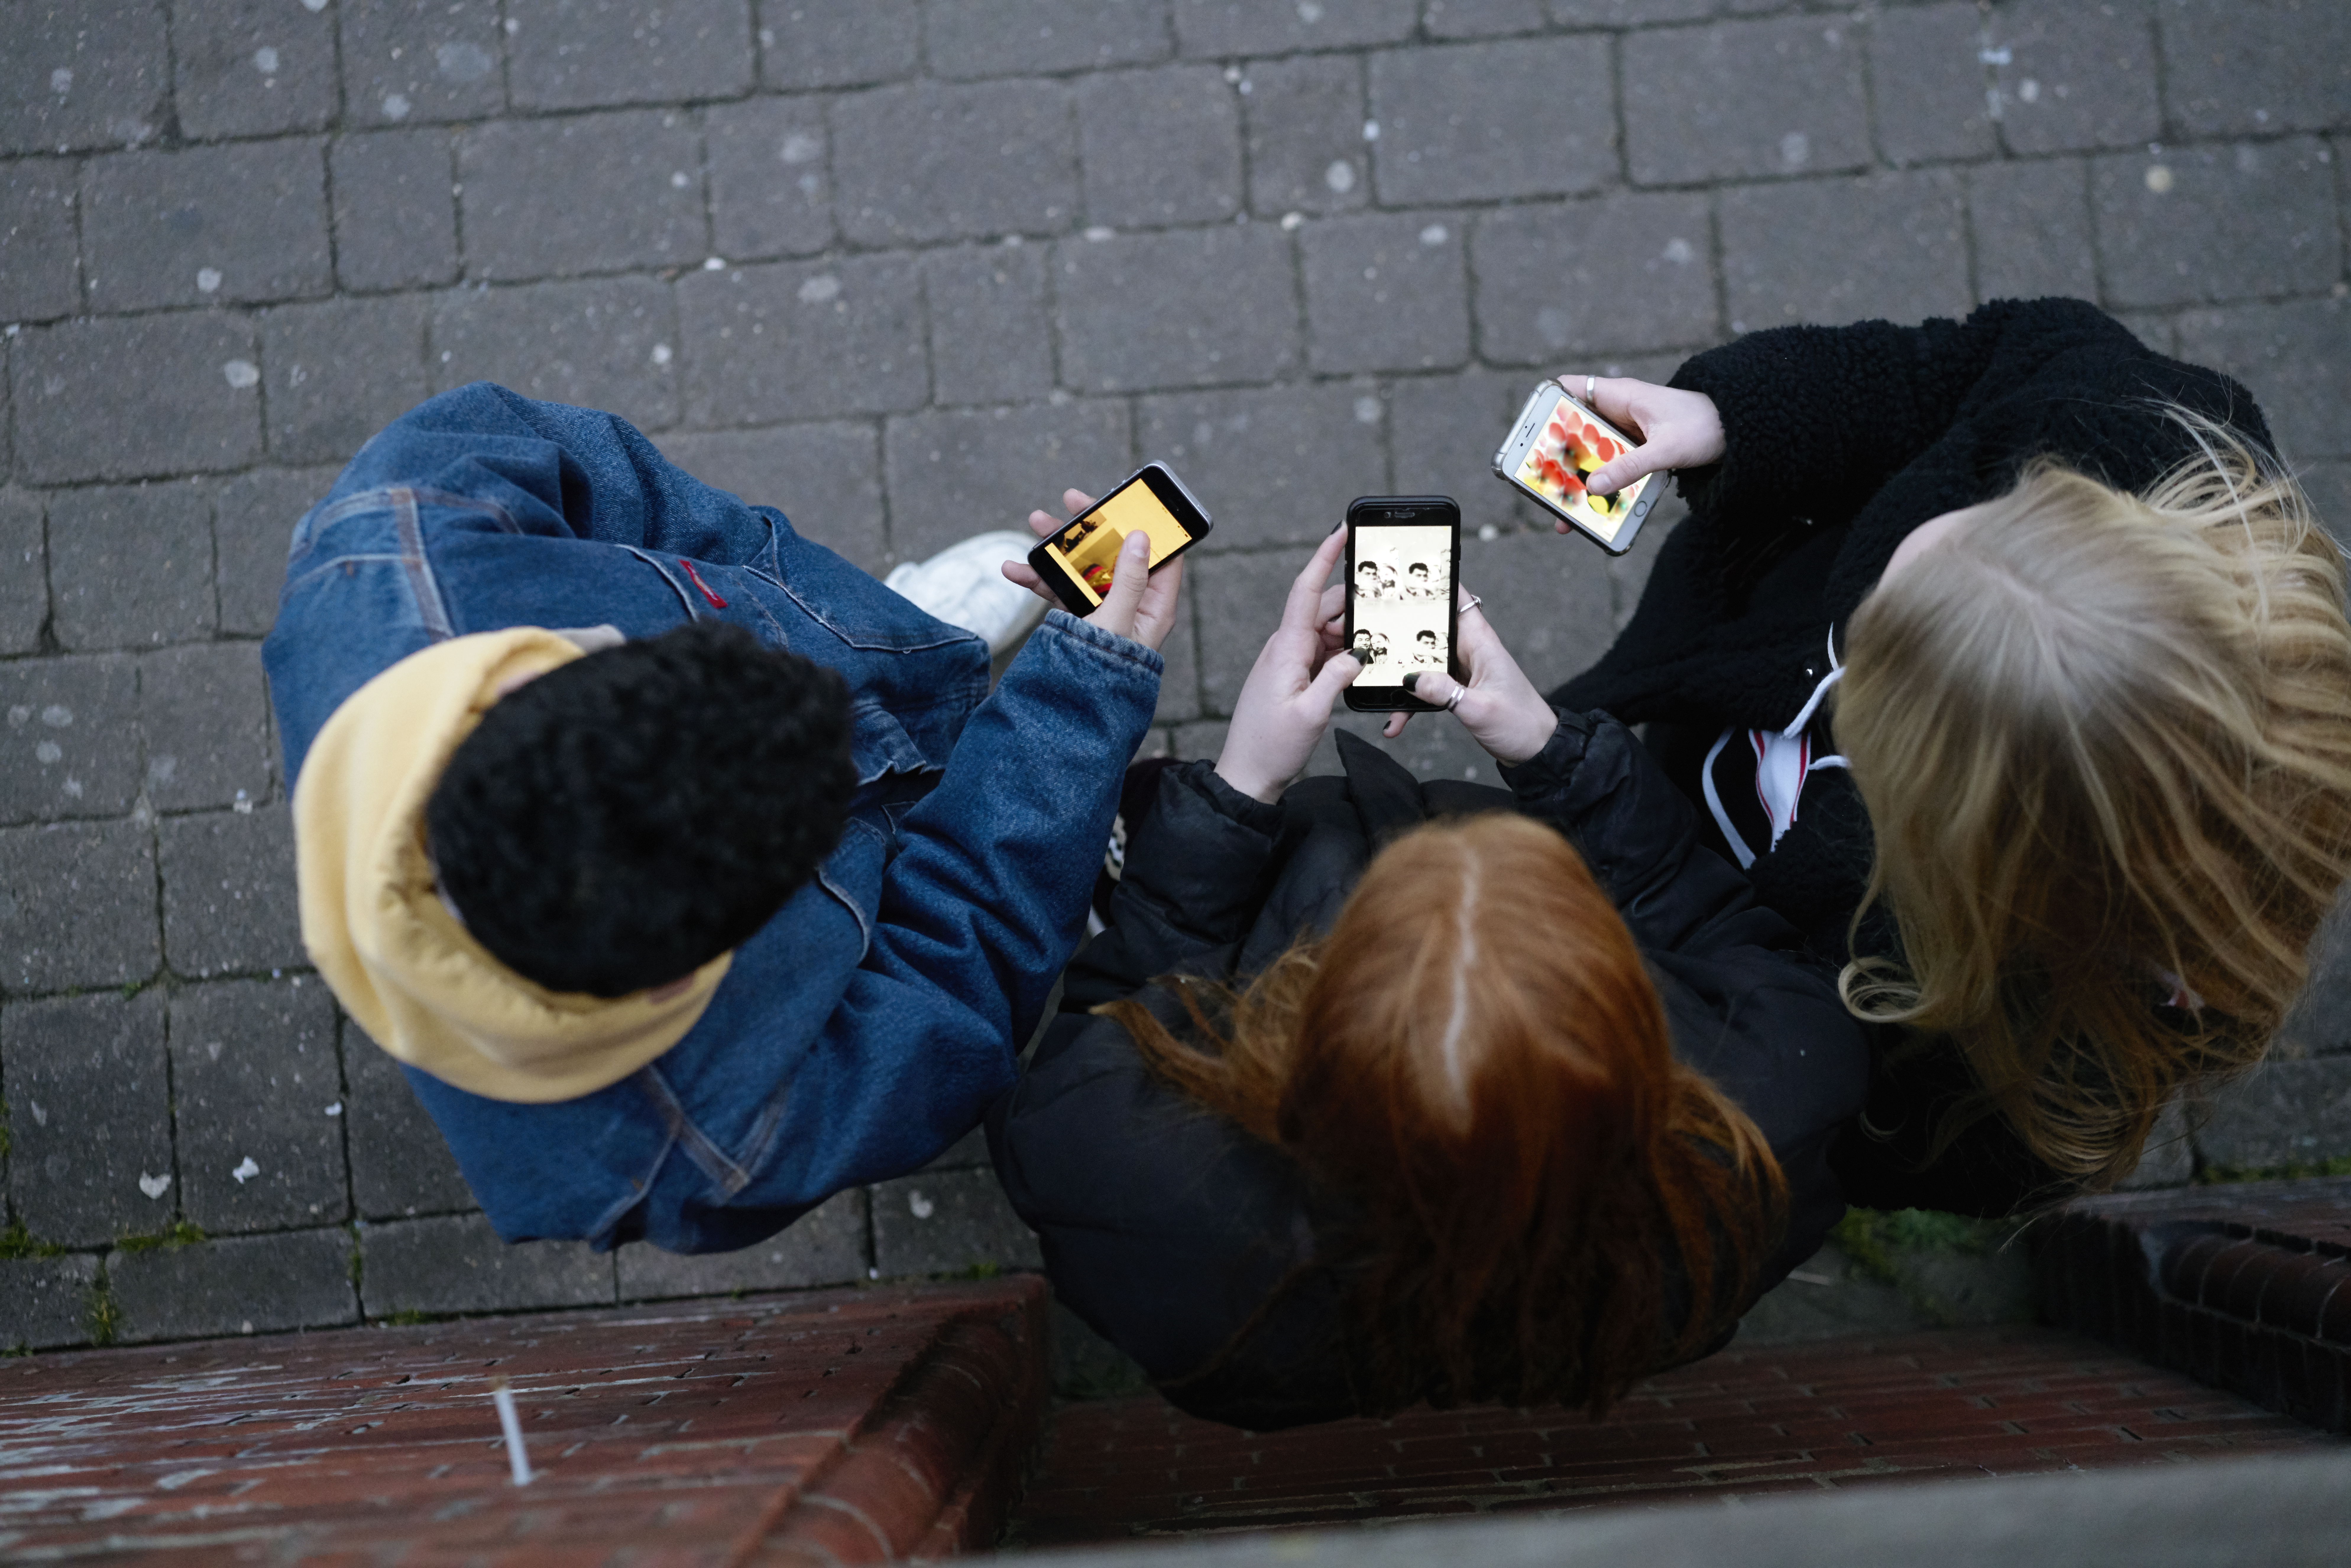 A group of three teenagers standing on a city sidewalk, seen from above, are looking at their smartphones.